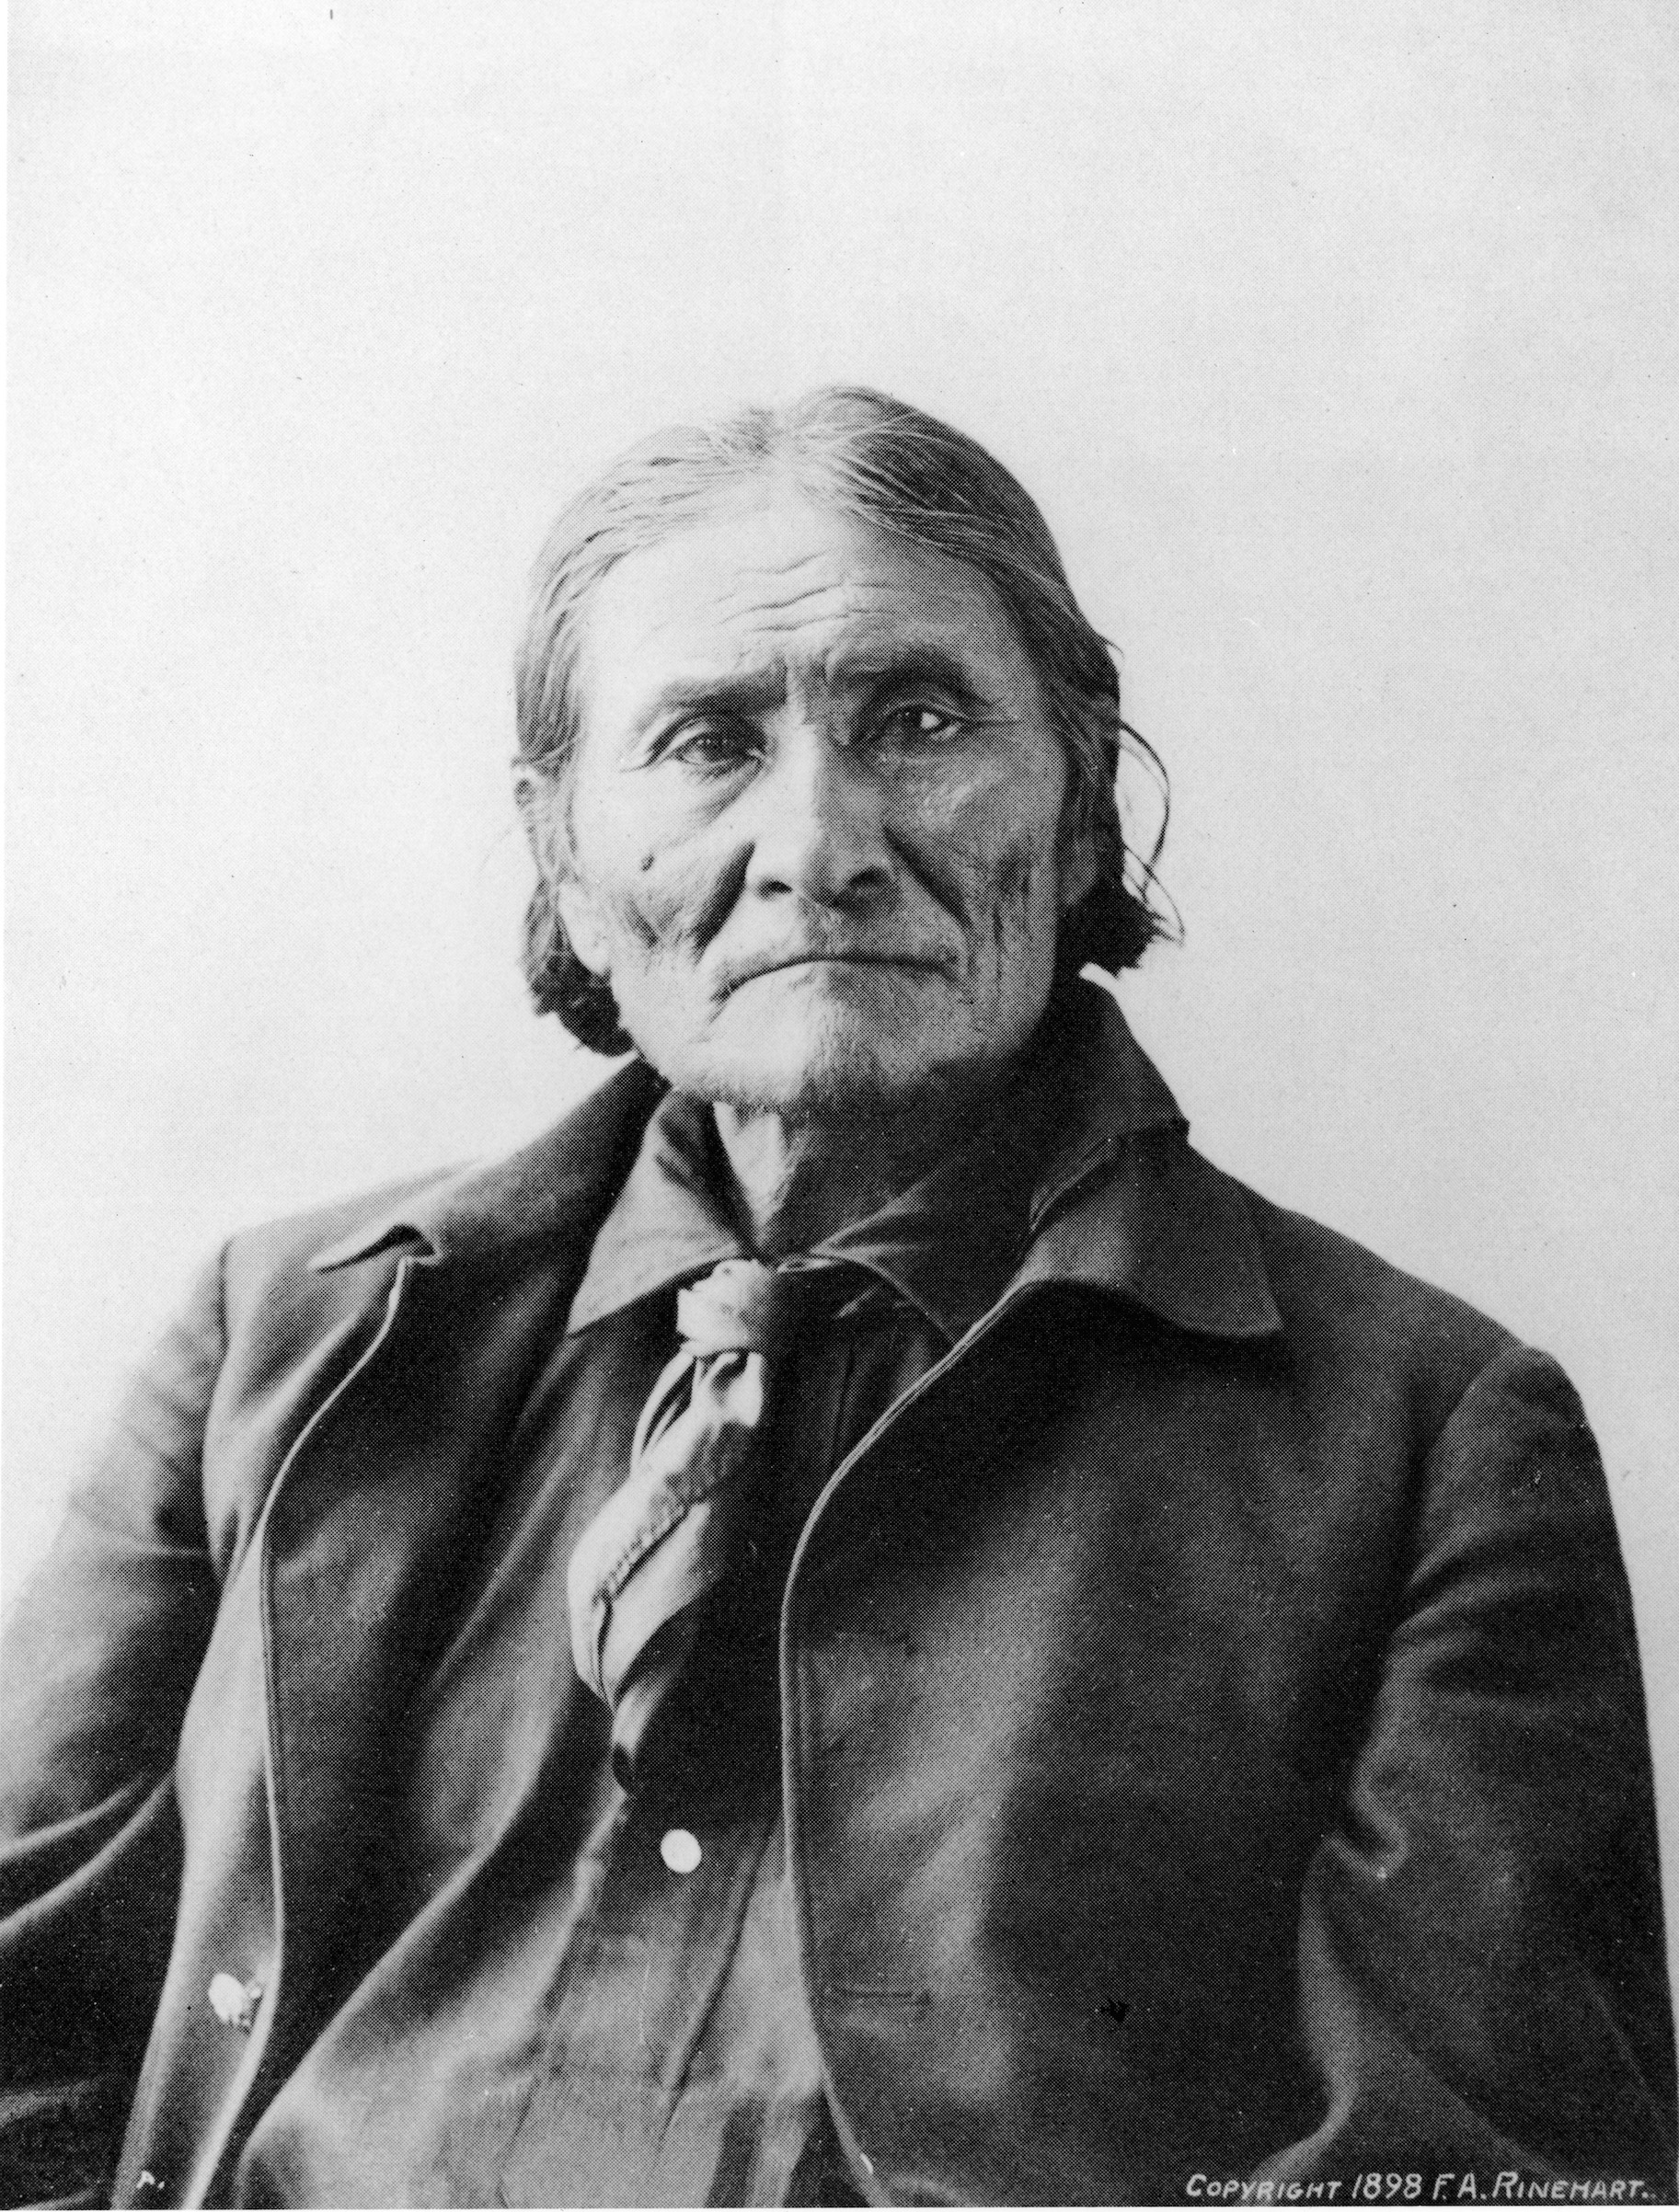 Portrait of Native American Indian chief Geronimo (1829 - 1909), 1890s.